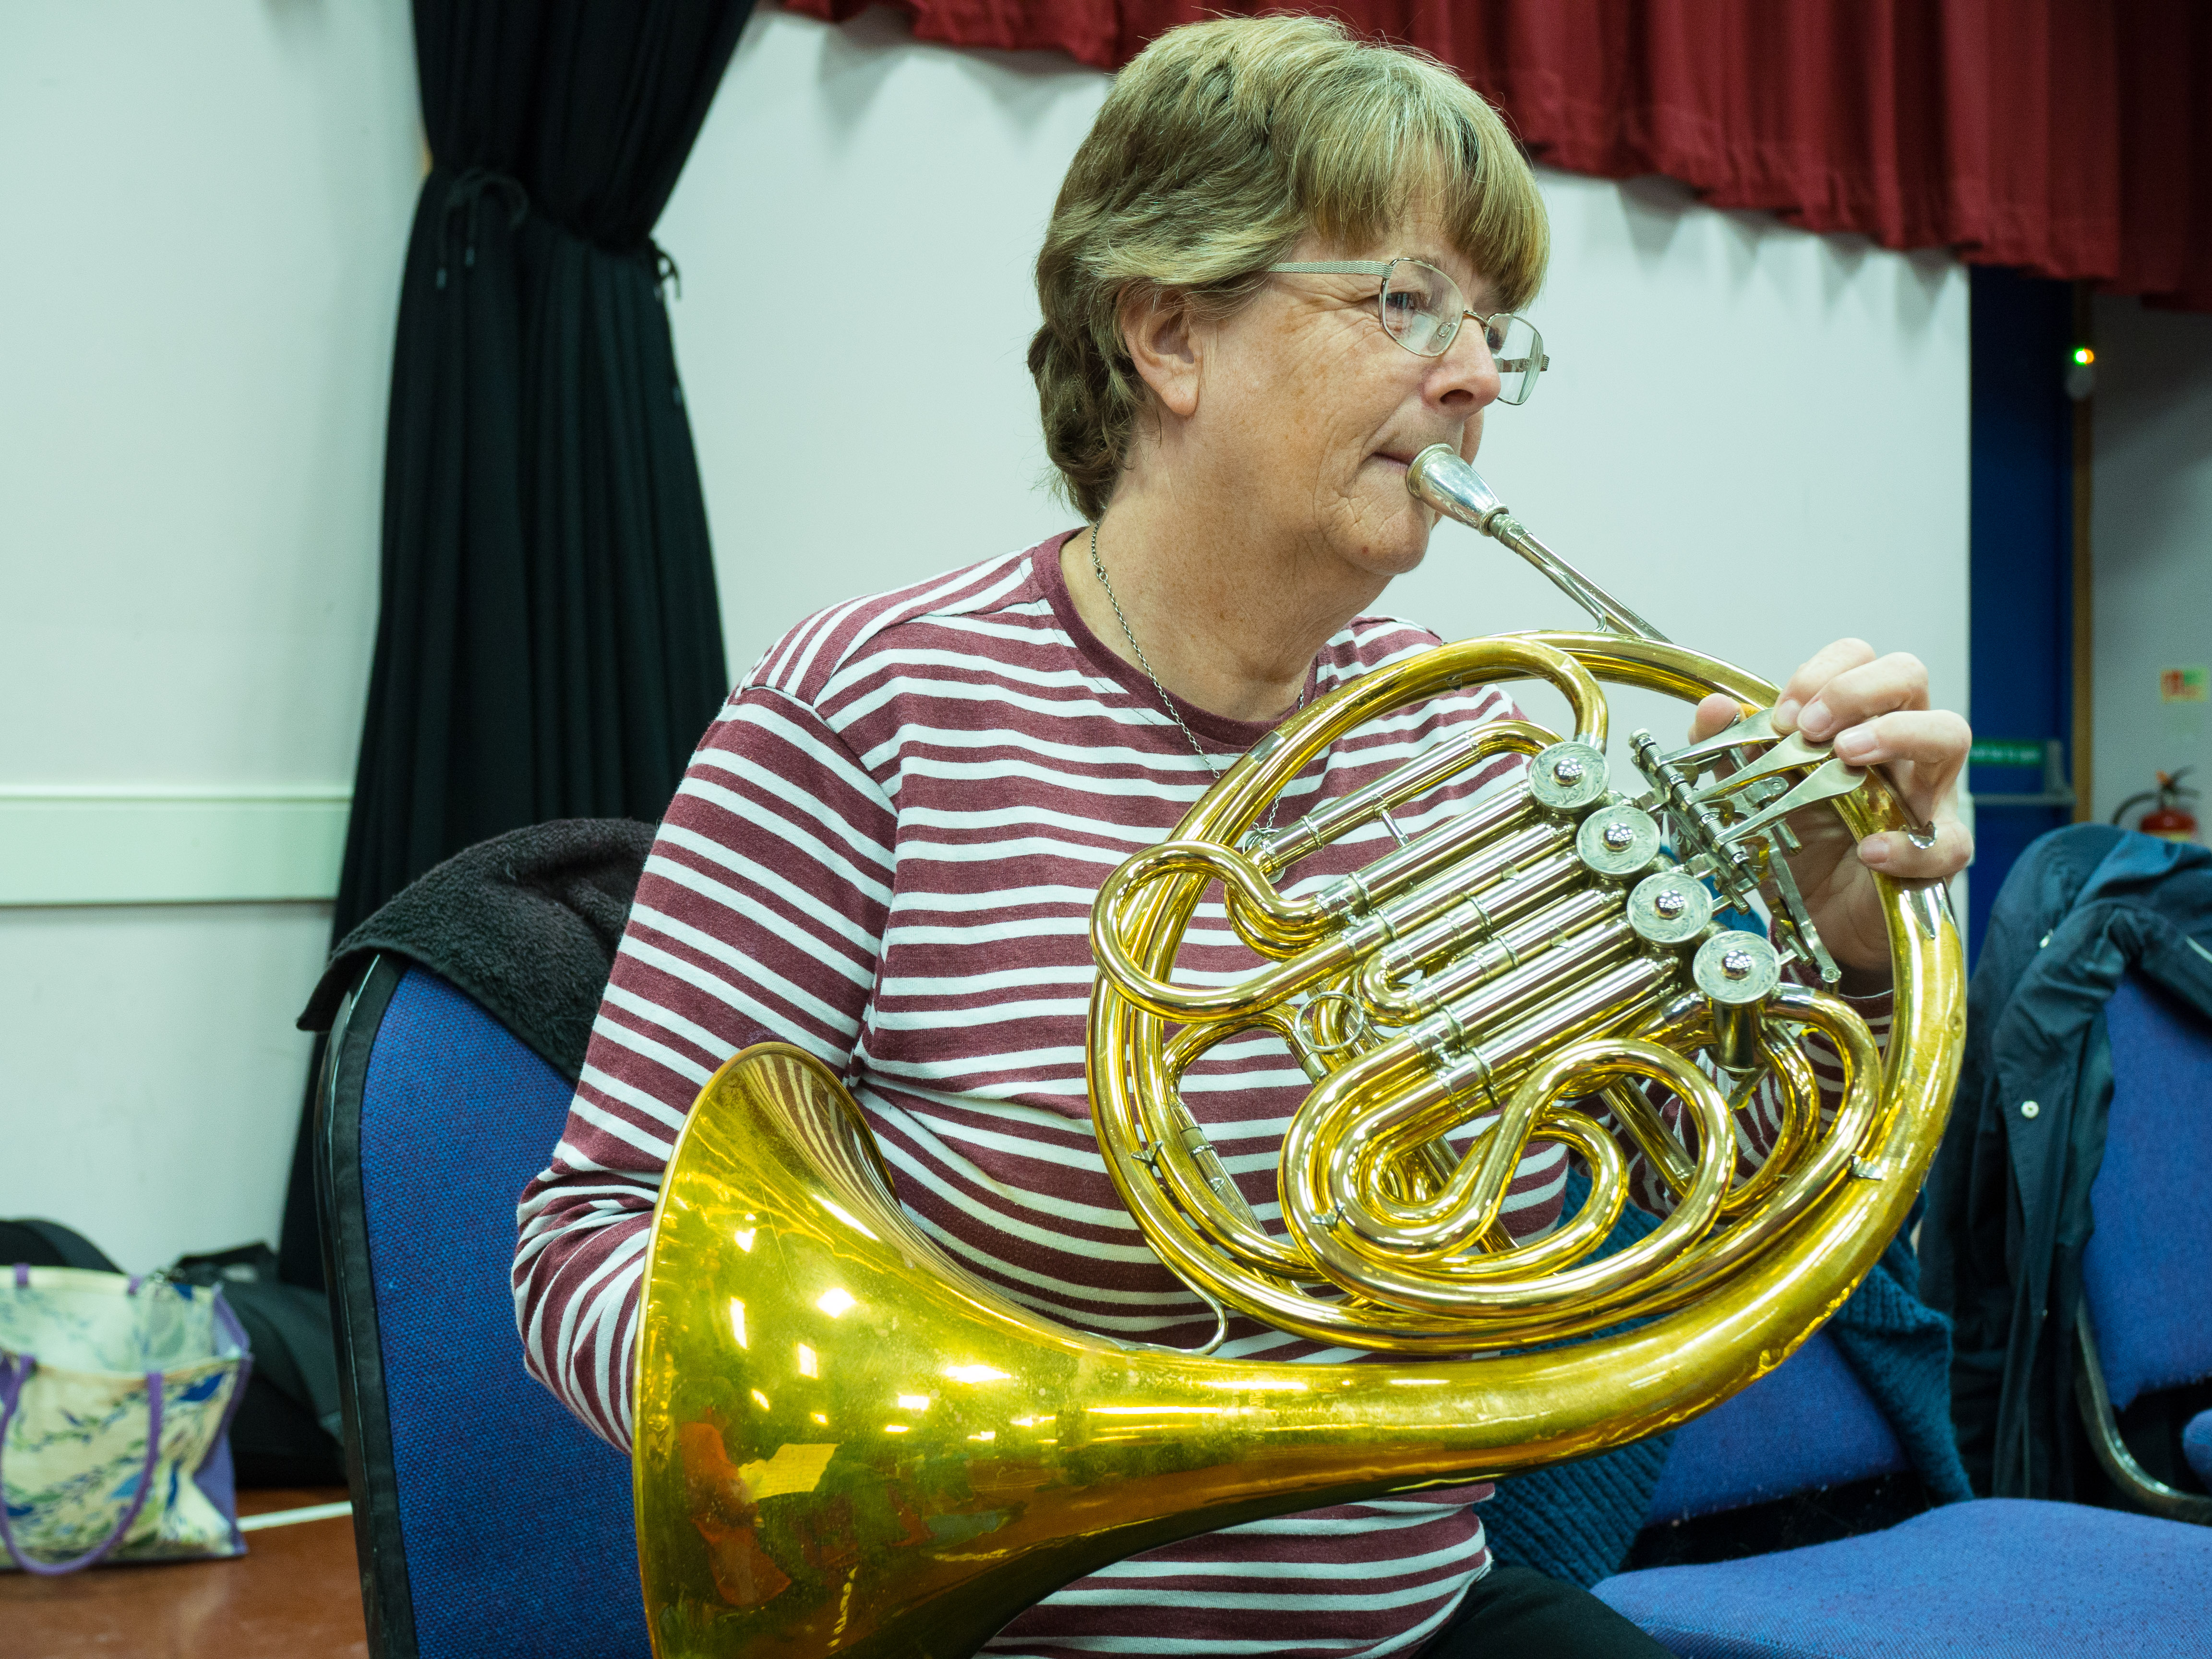 Debs playing the French Horn